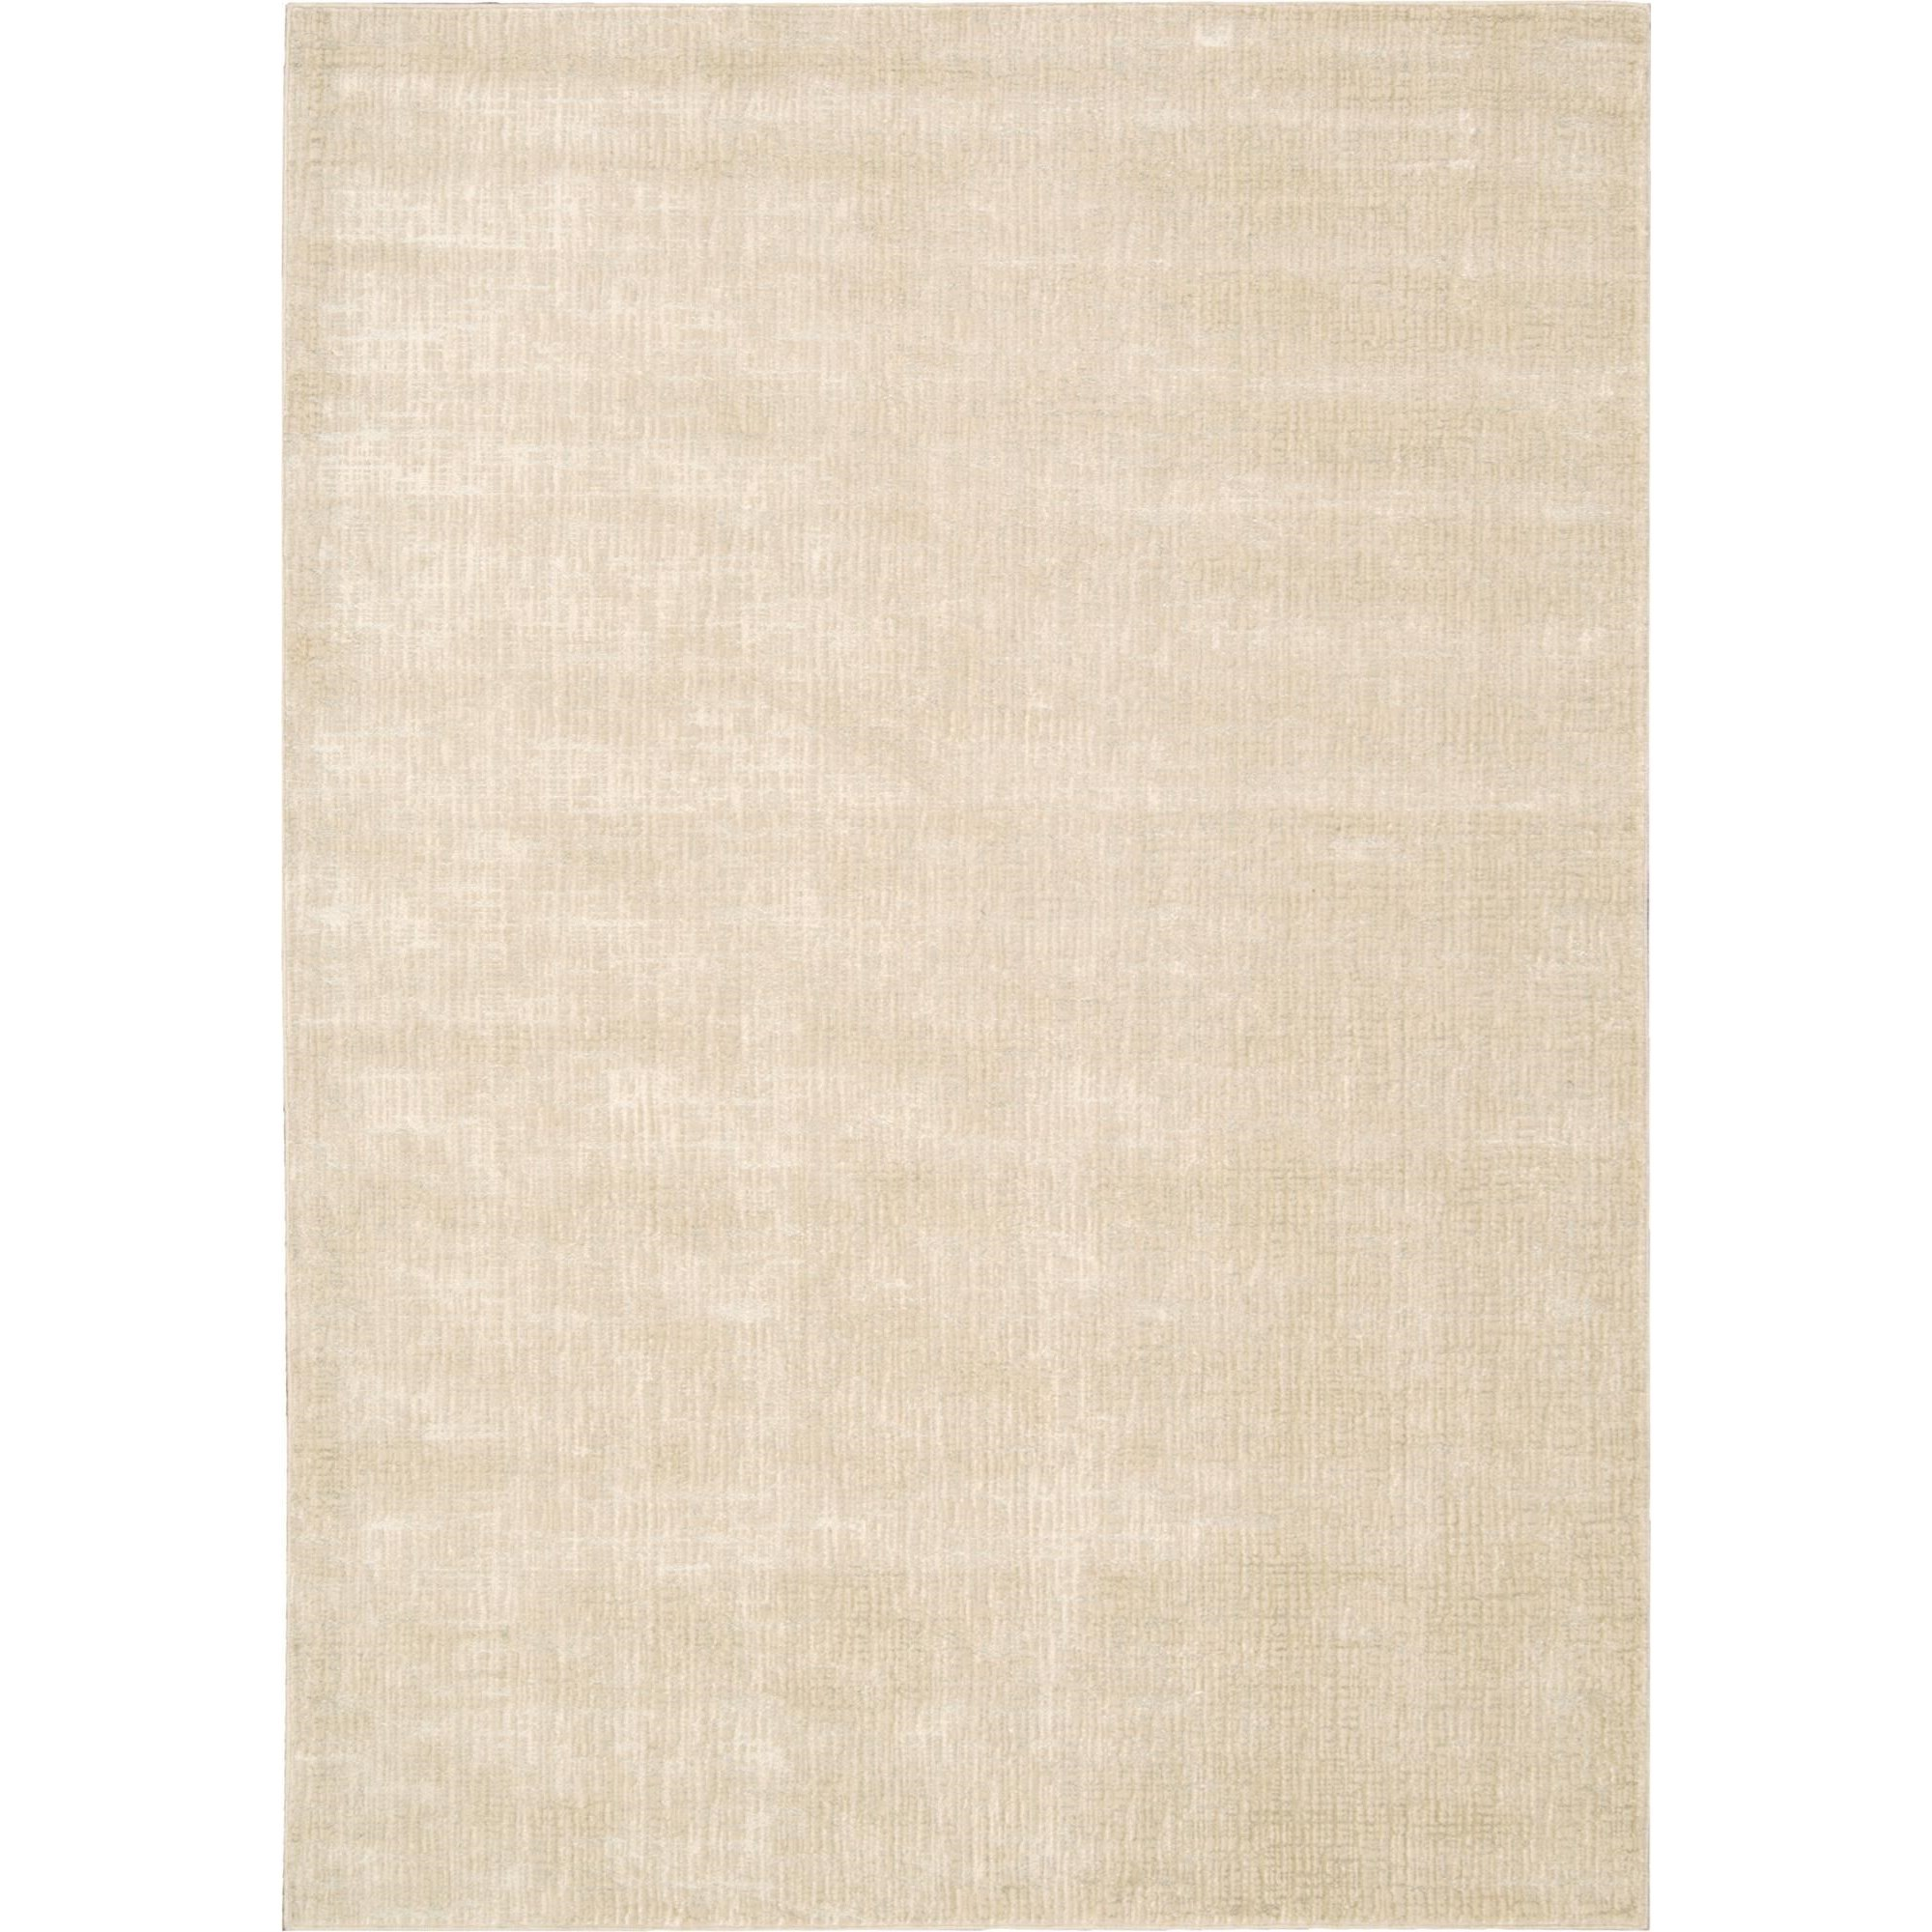 "Nourison Starlight 9'3"" x 12'9"" Oyster Area Rug - Item Number: 18775"